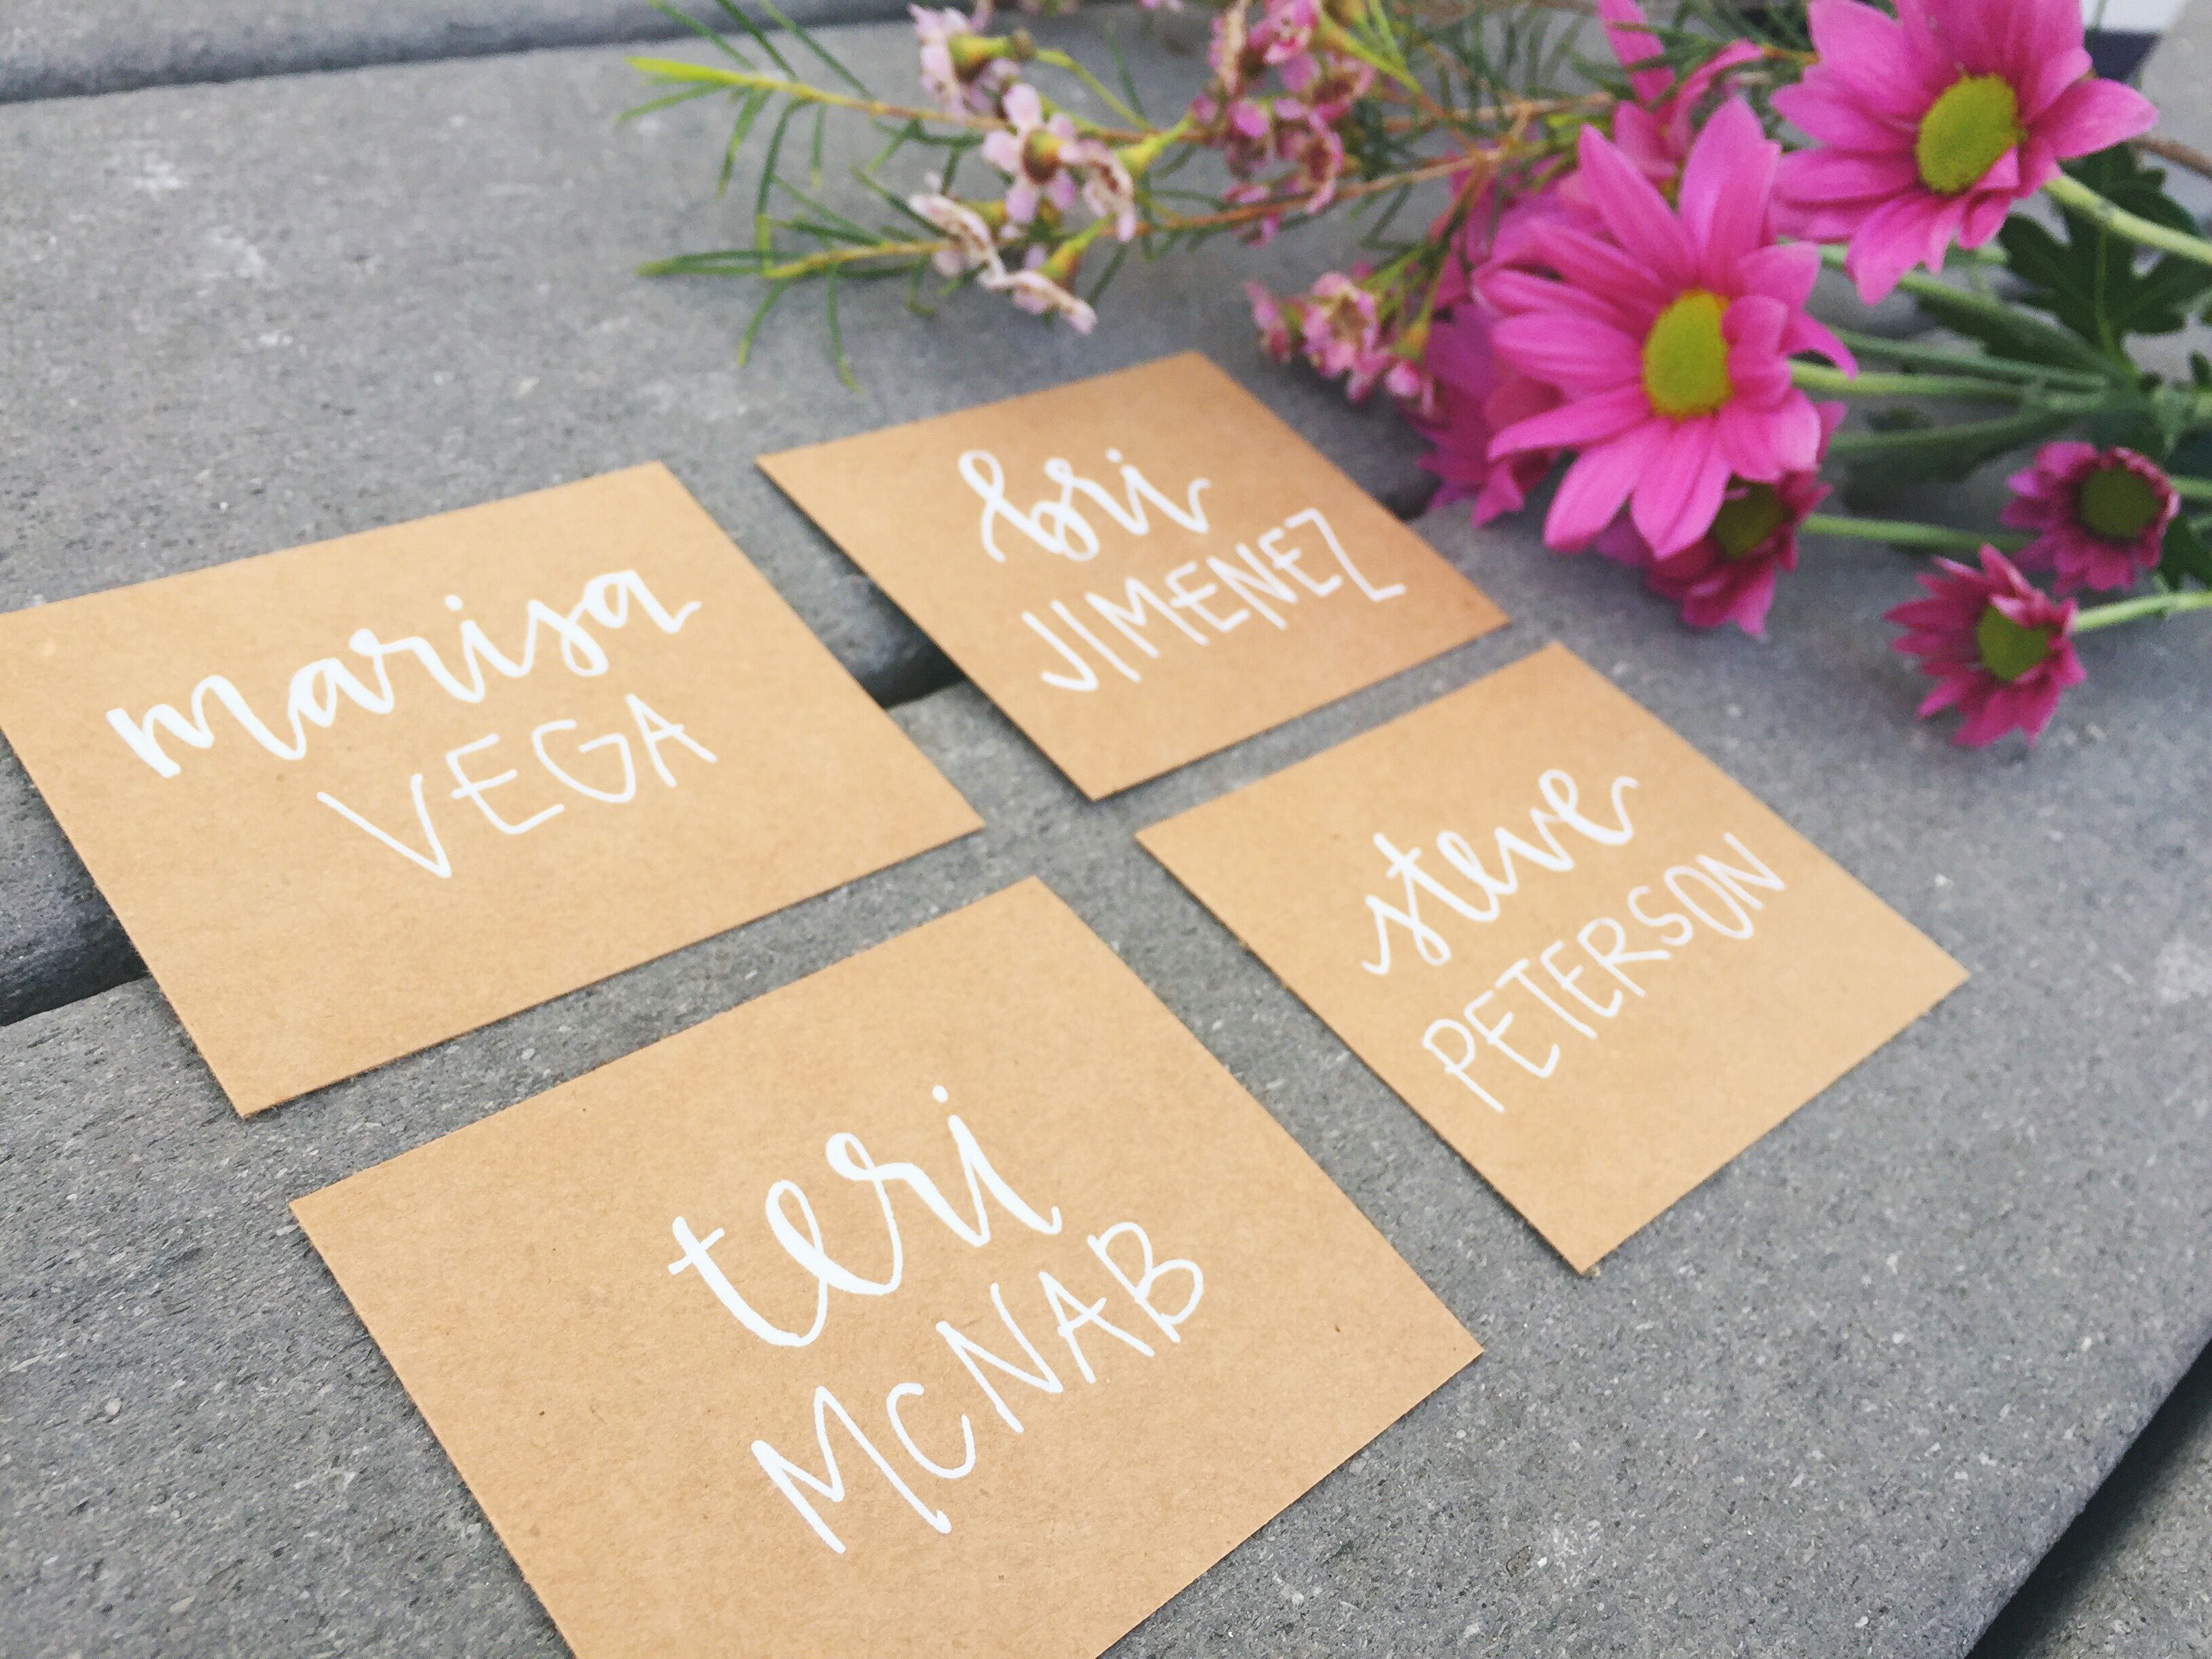 Nice Dinner Party Name Ideas Part - 14: PLACE CARD WEDDING DECOR IDEAS || Wedding Place Cards - Tent Fold - Escort  Card - Black Calligraphy With Kraft Paper - Bride Groom - Dinner Party -  Name Tag ...